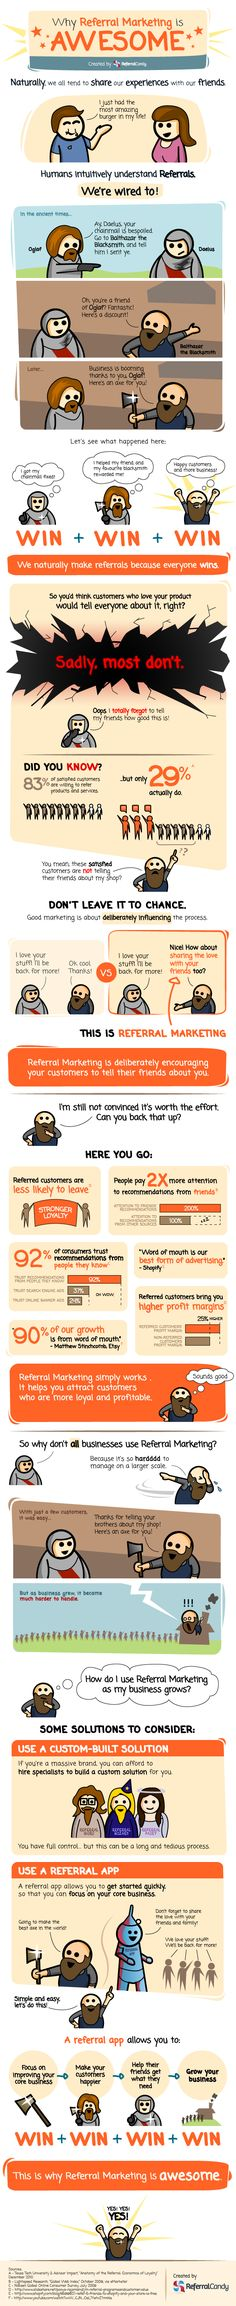 Why Referral Marketing Is Awesome #Infographic #Marketing #ReferralMarketing